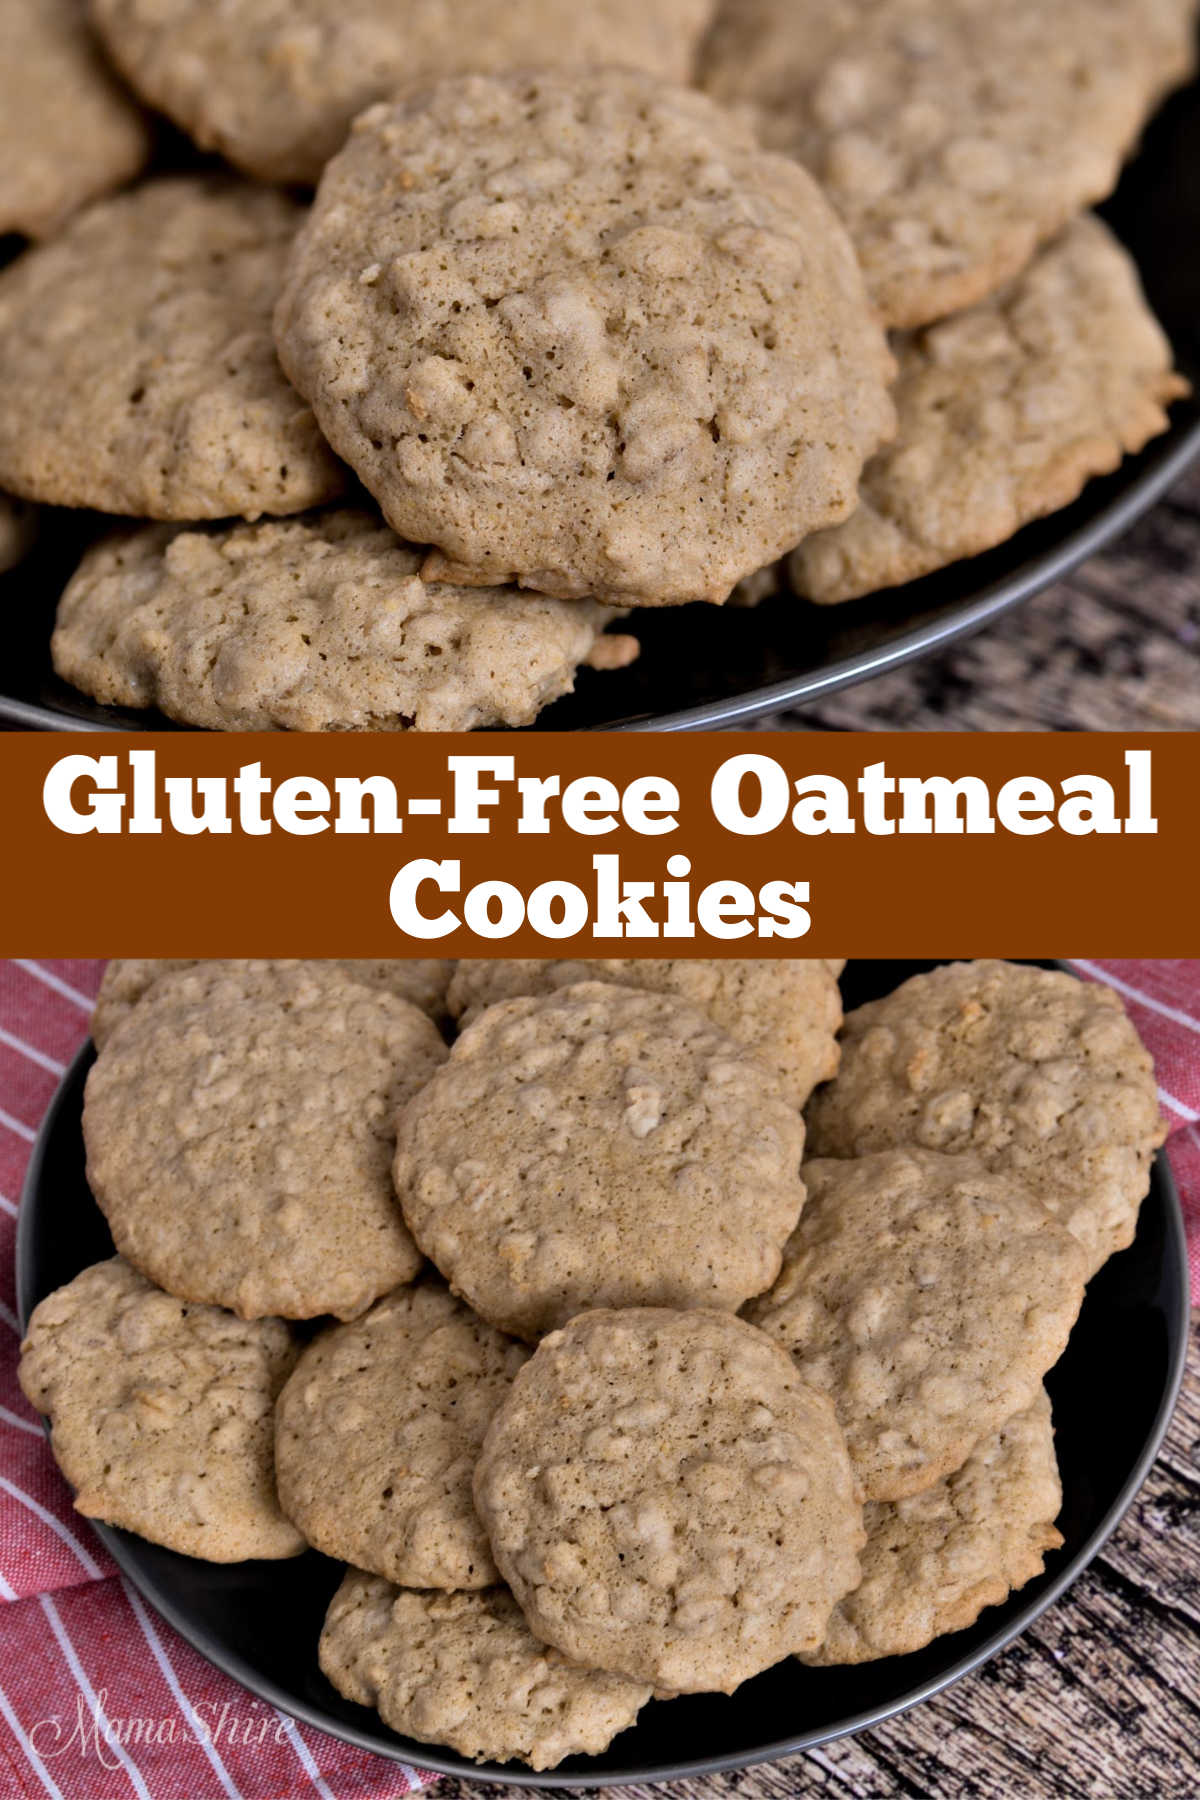 A pile of Gluten-Free Oatmeal Cookies on a black plate.